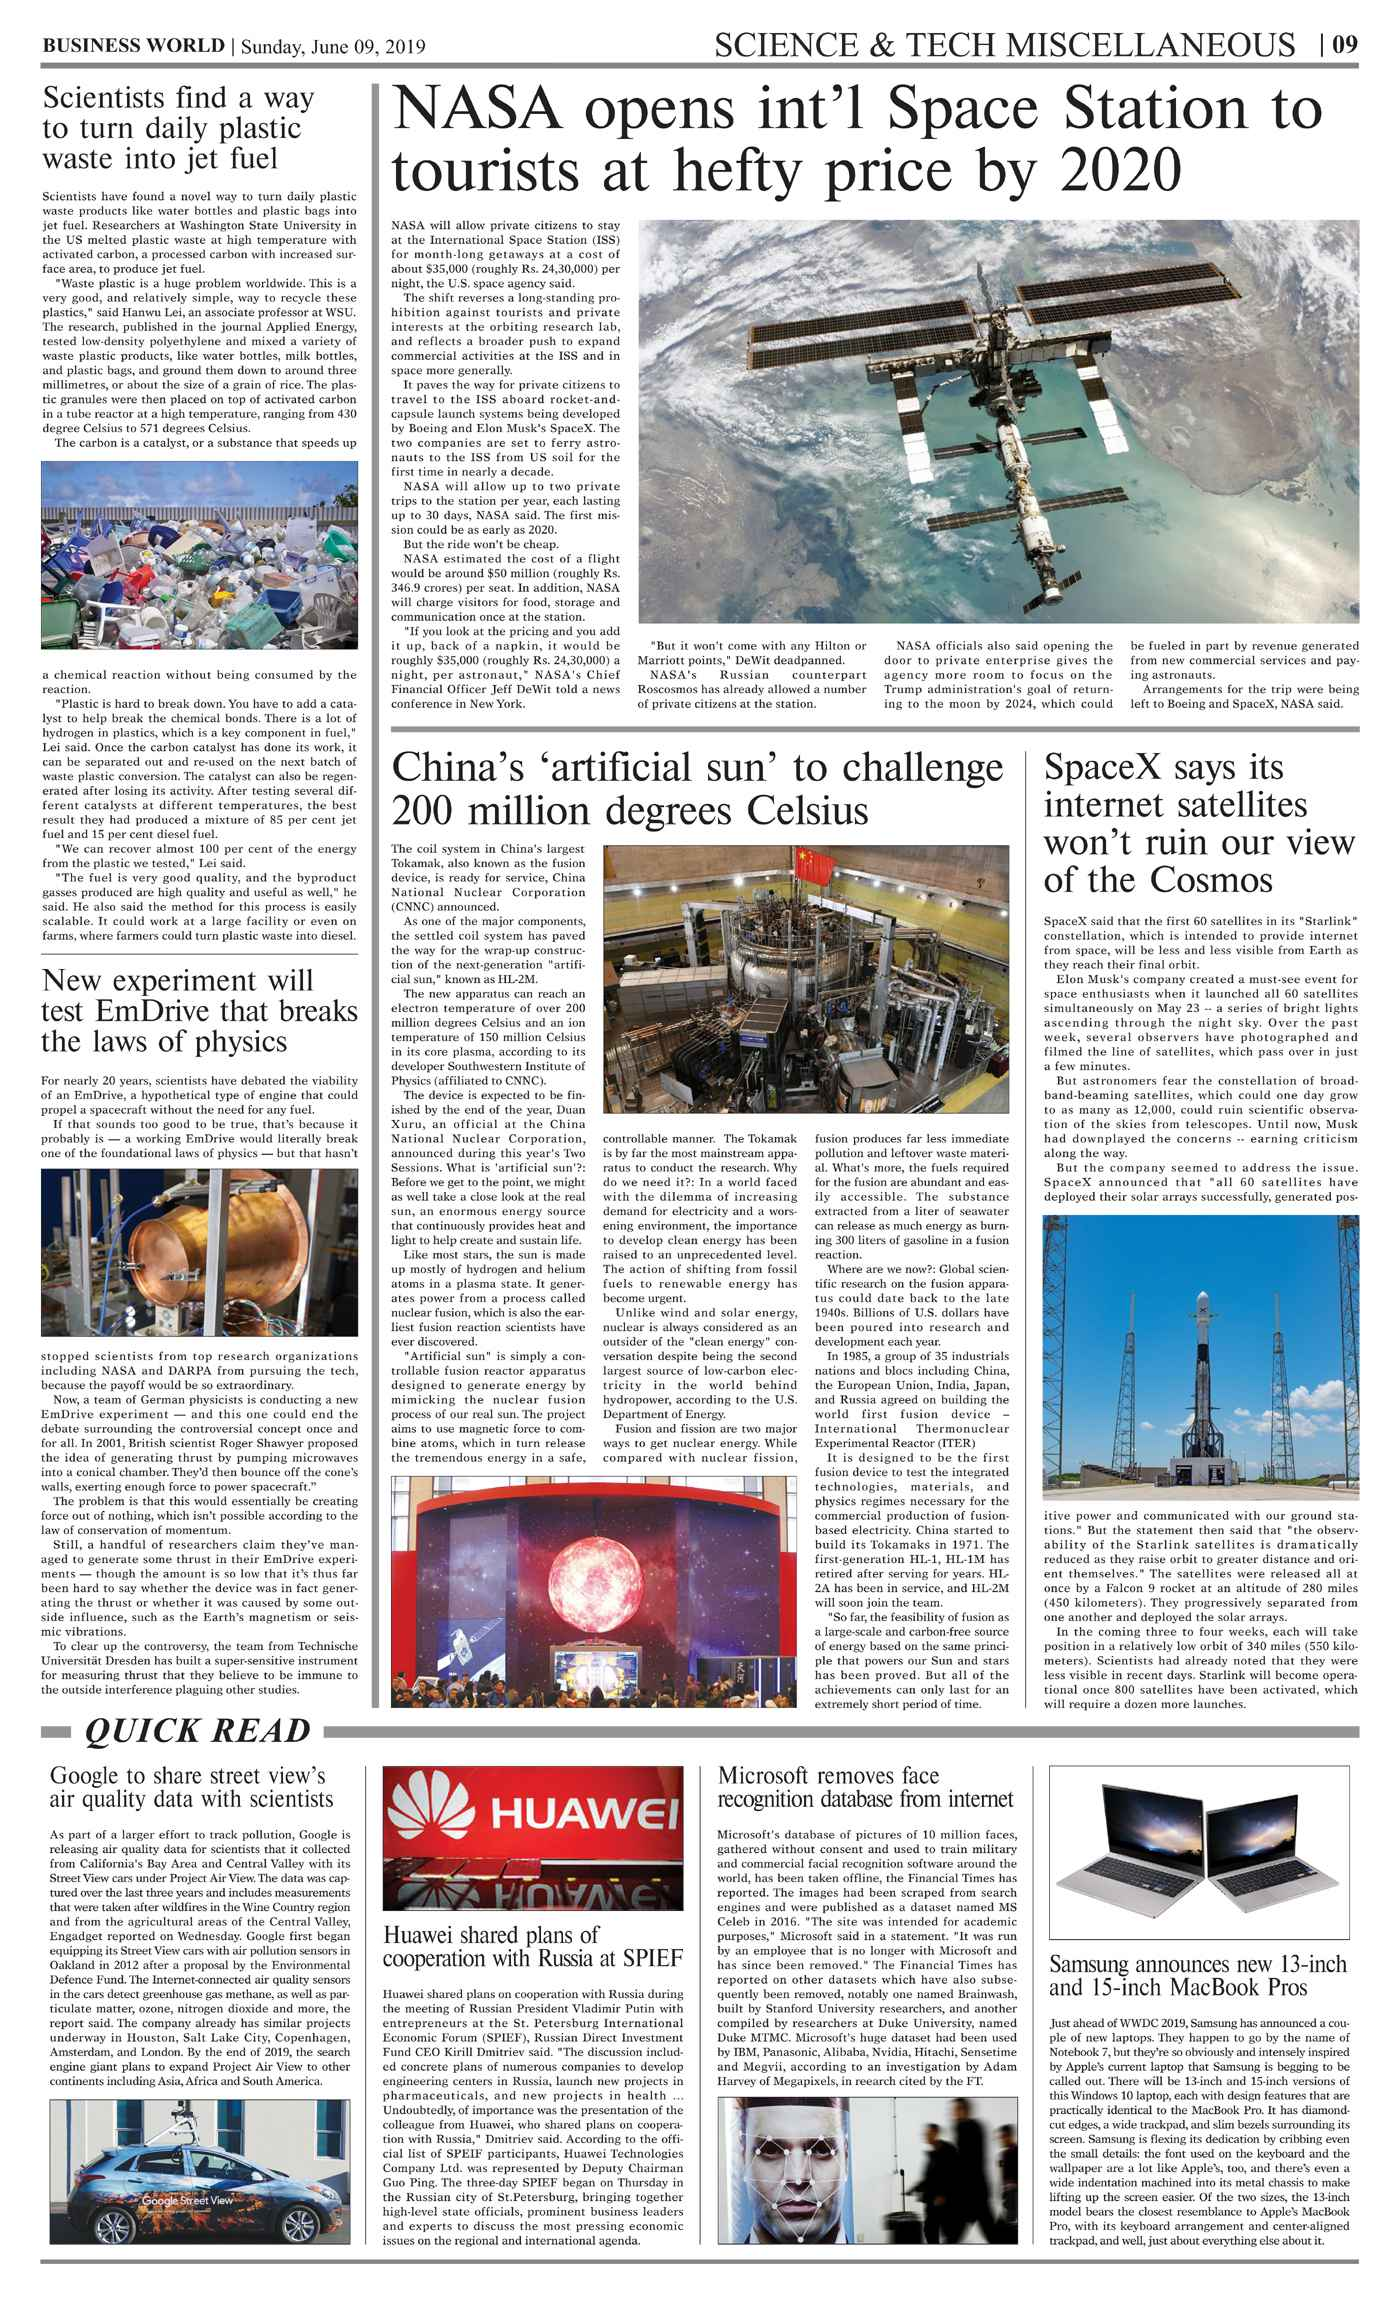 Daily Business World E-Paper 9th June 2019 - Daily Business